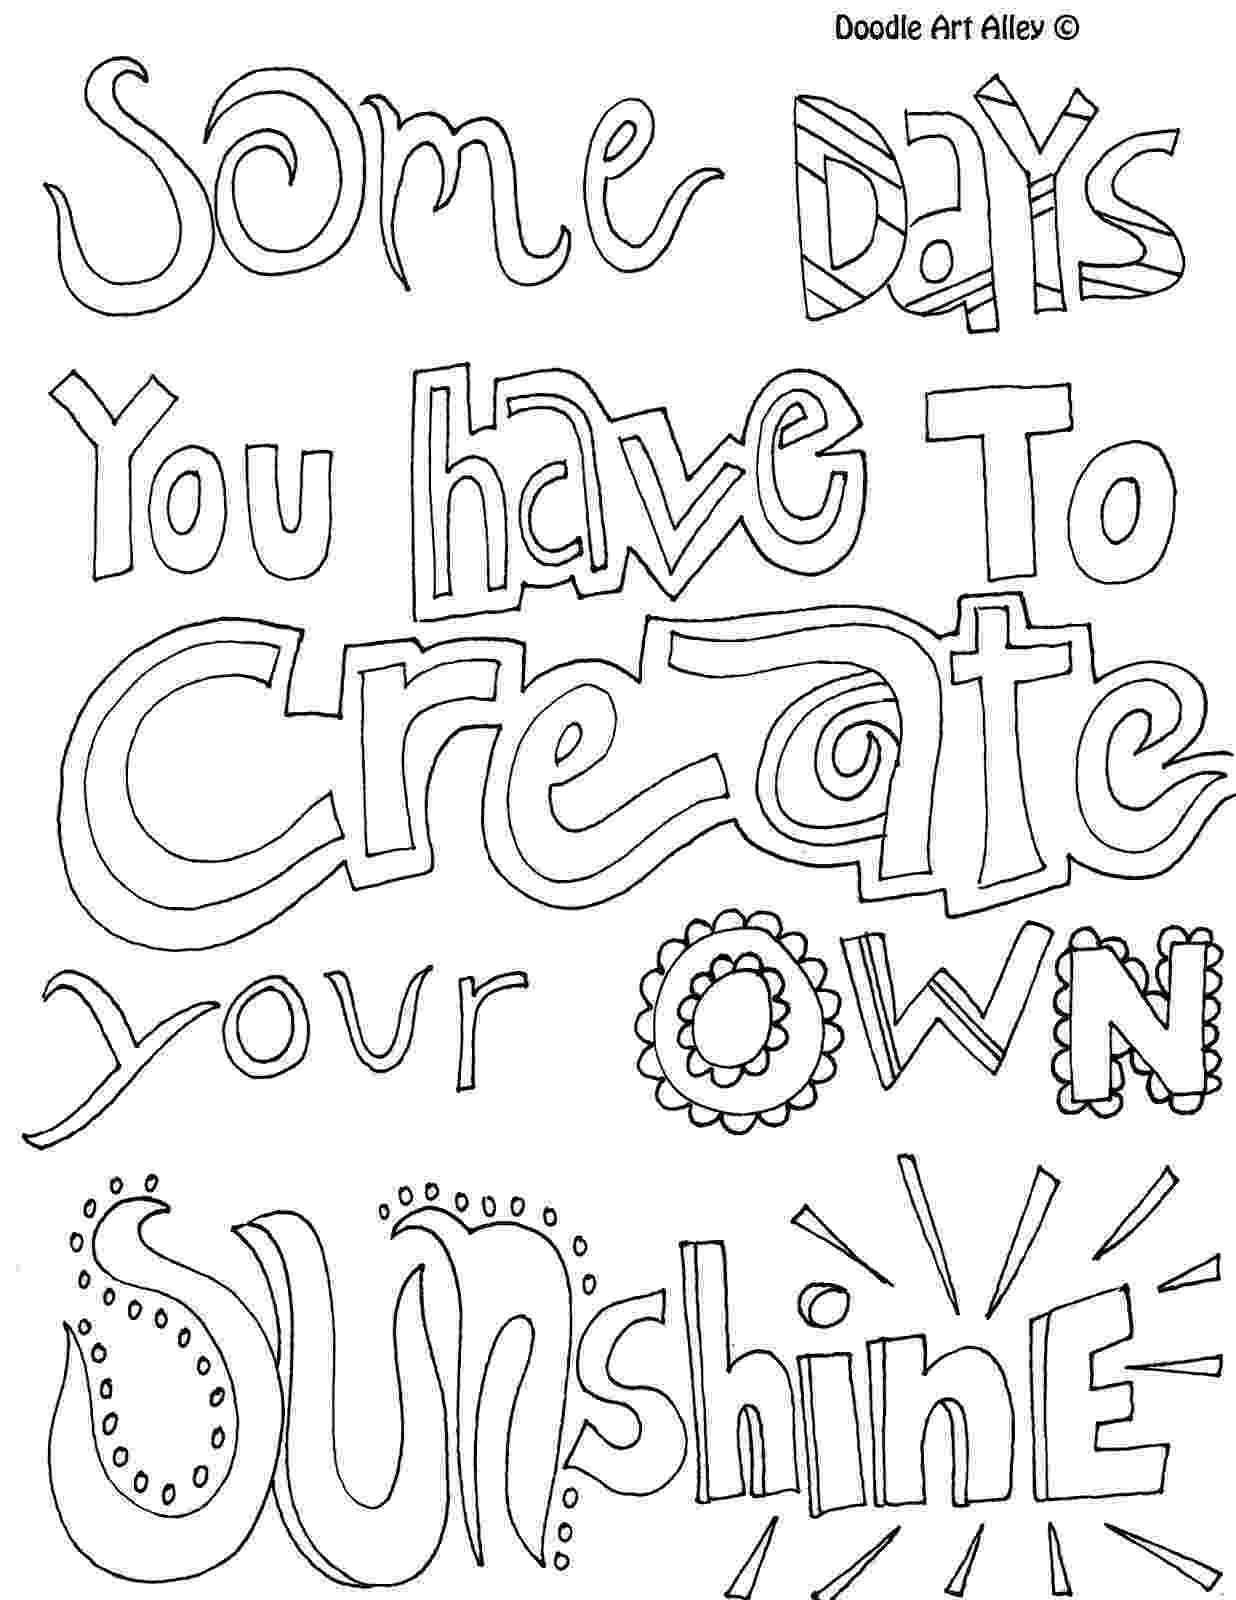 inspirational quotes colouring pages inspirational quotes coloring pages quotesgram pages quotes inspirational colouring